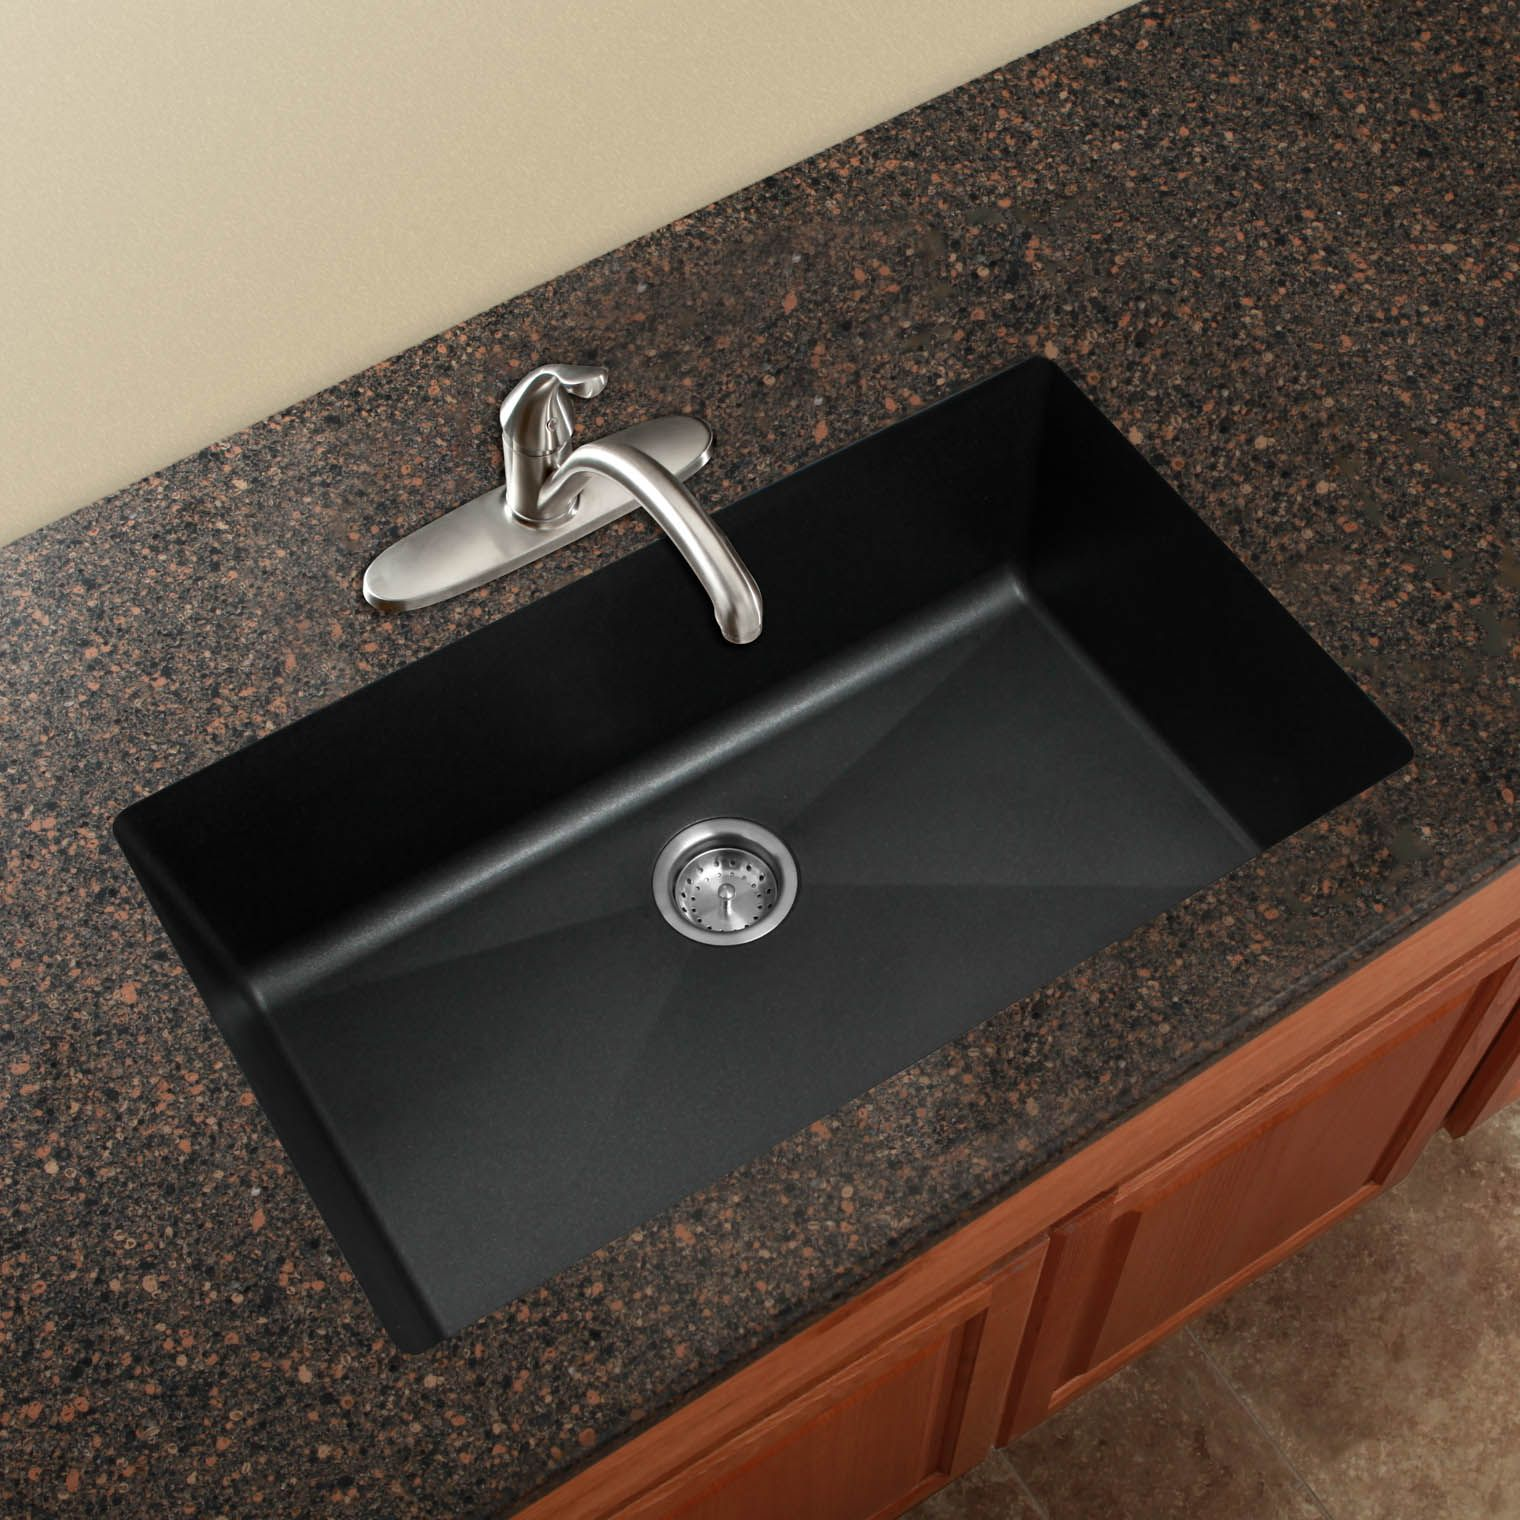 blanco silgranit sink pictures - Google Search | Blanco Sinks ...